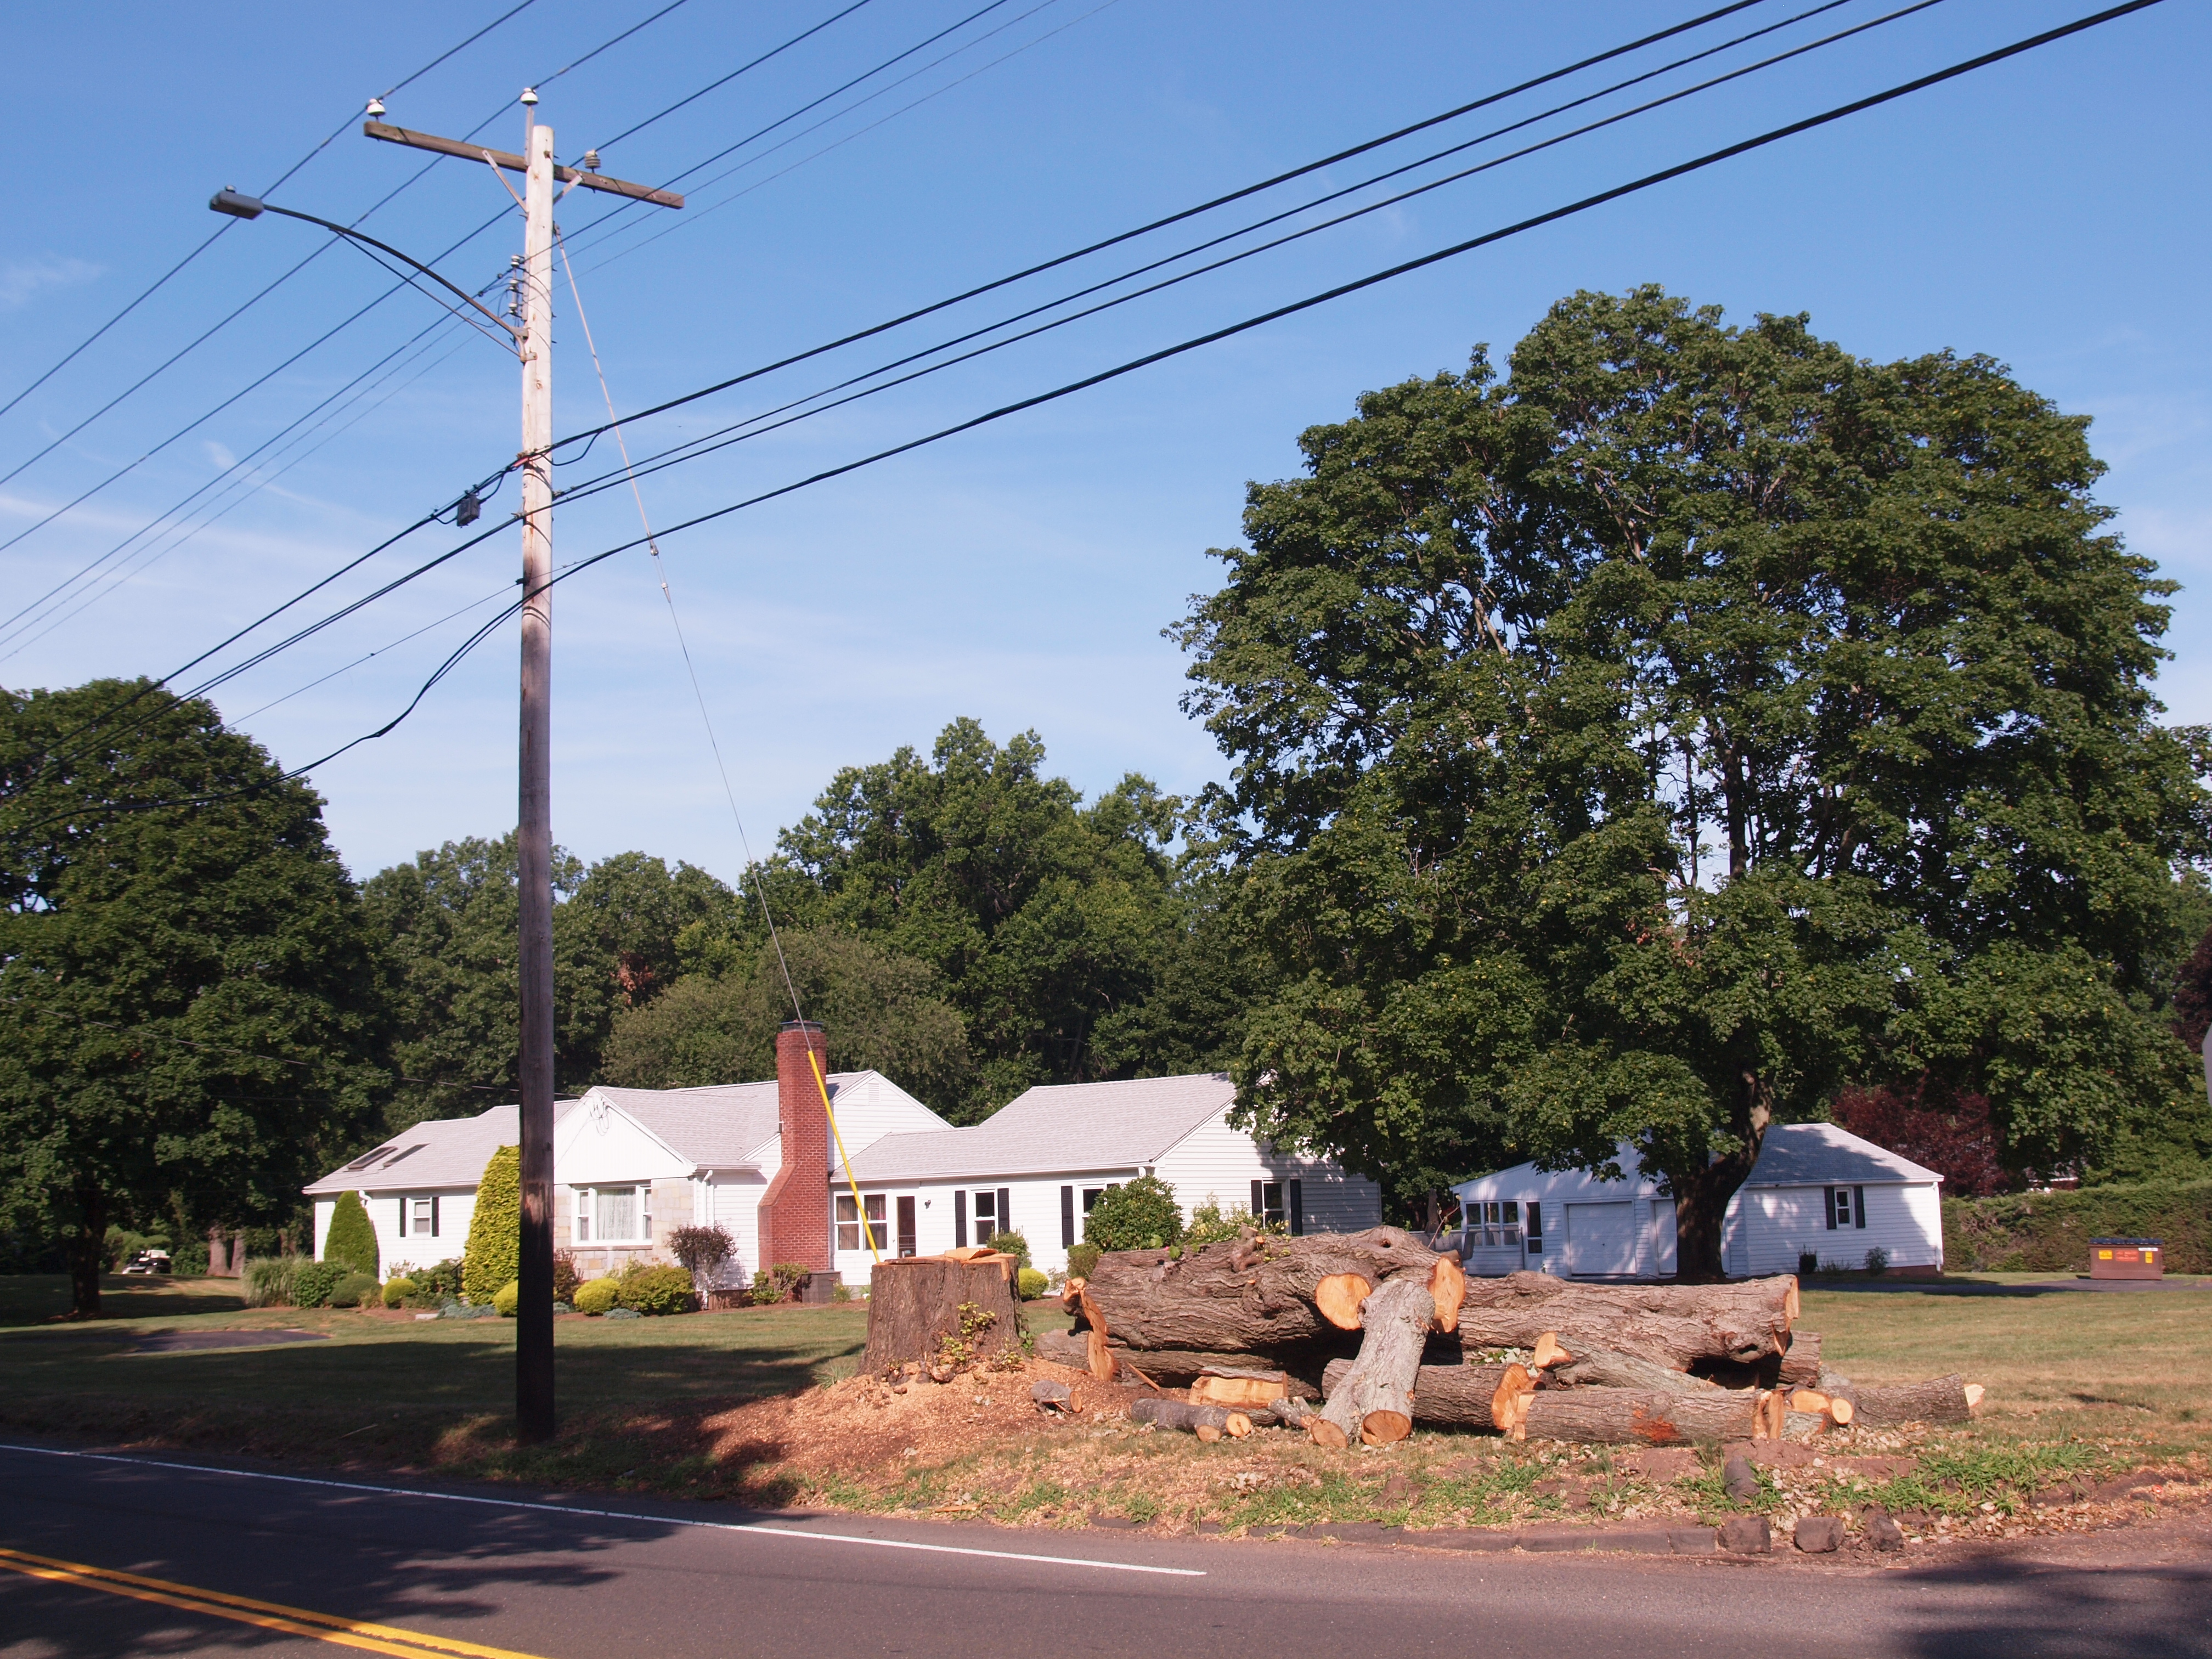 North Haven Tree removed from under the utility wires